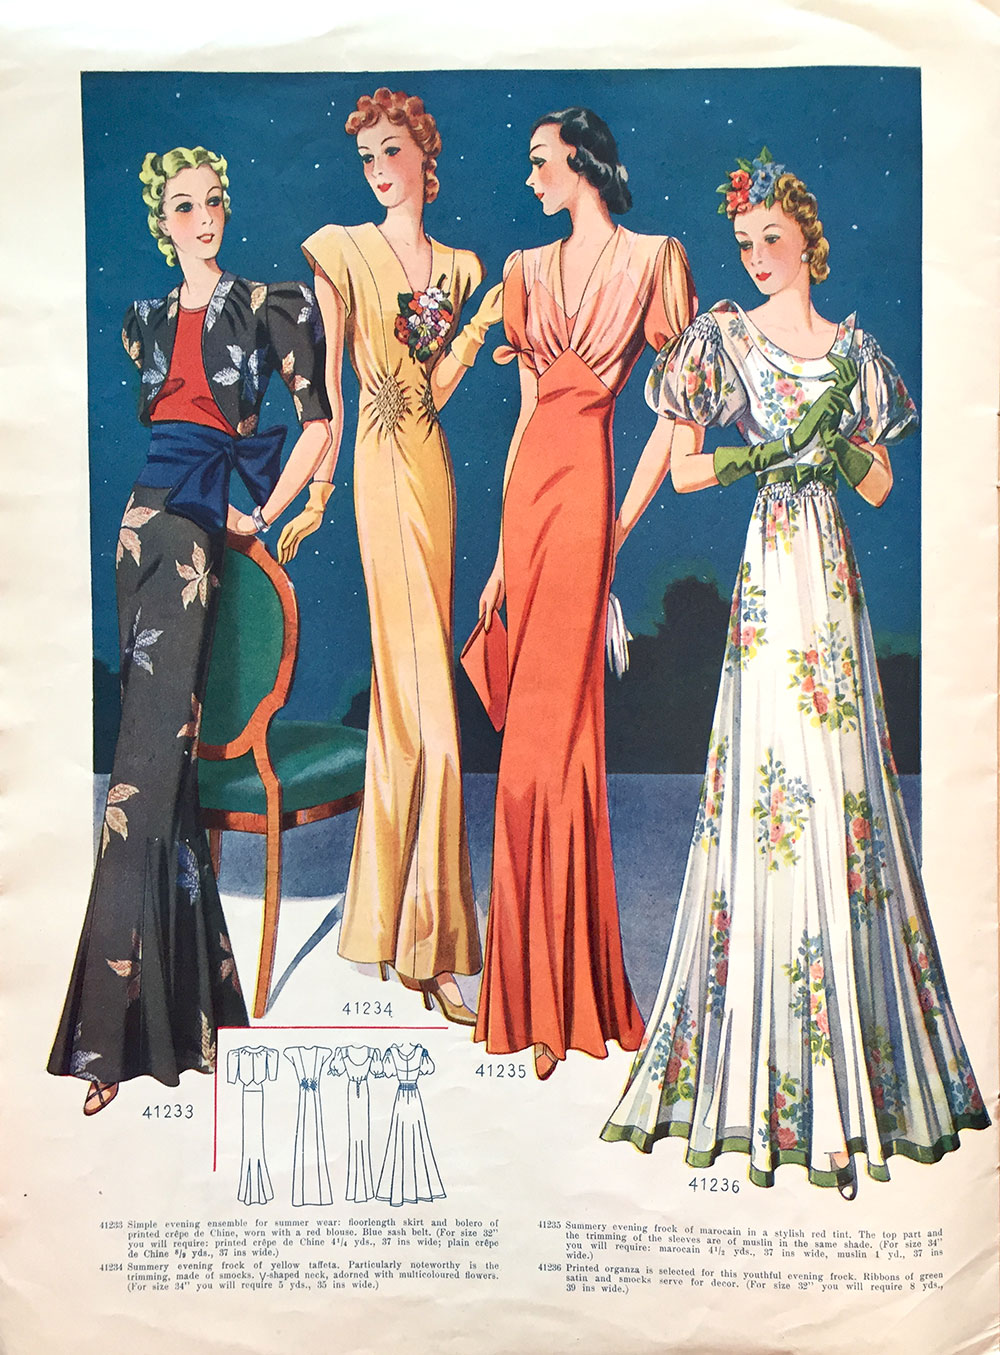 1938 evening gowns